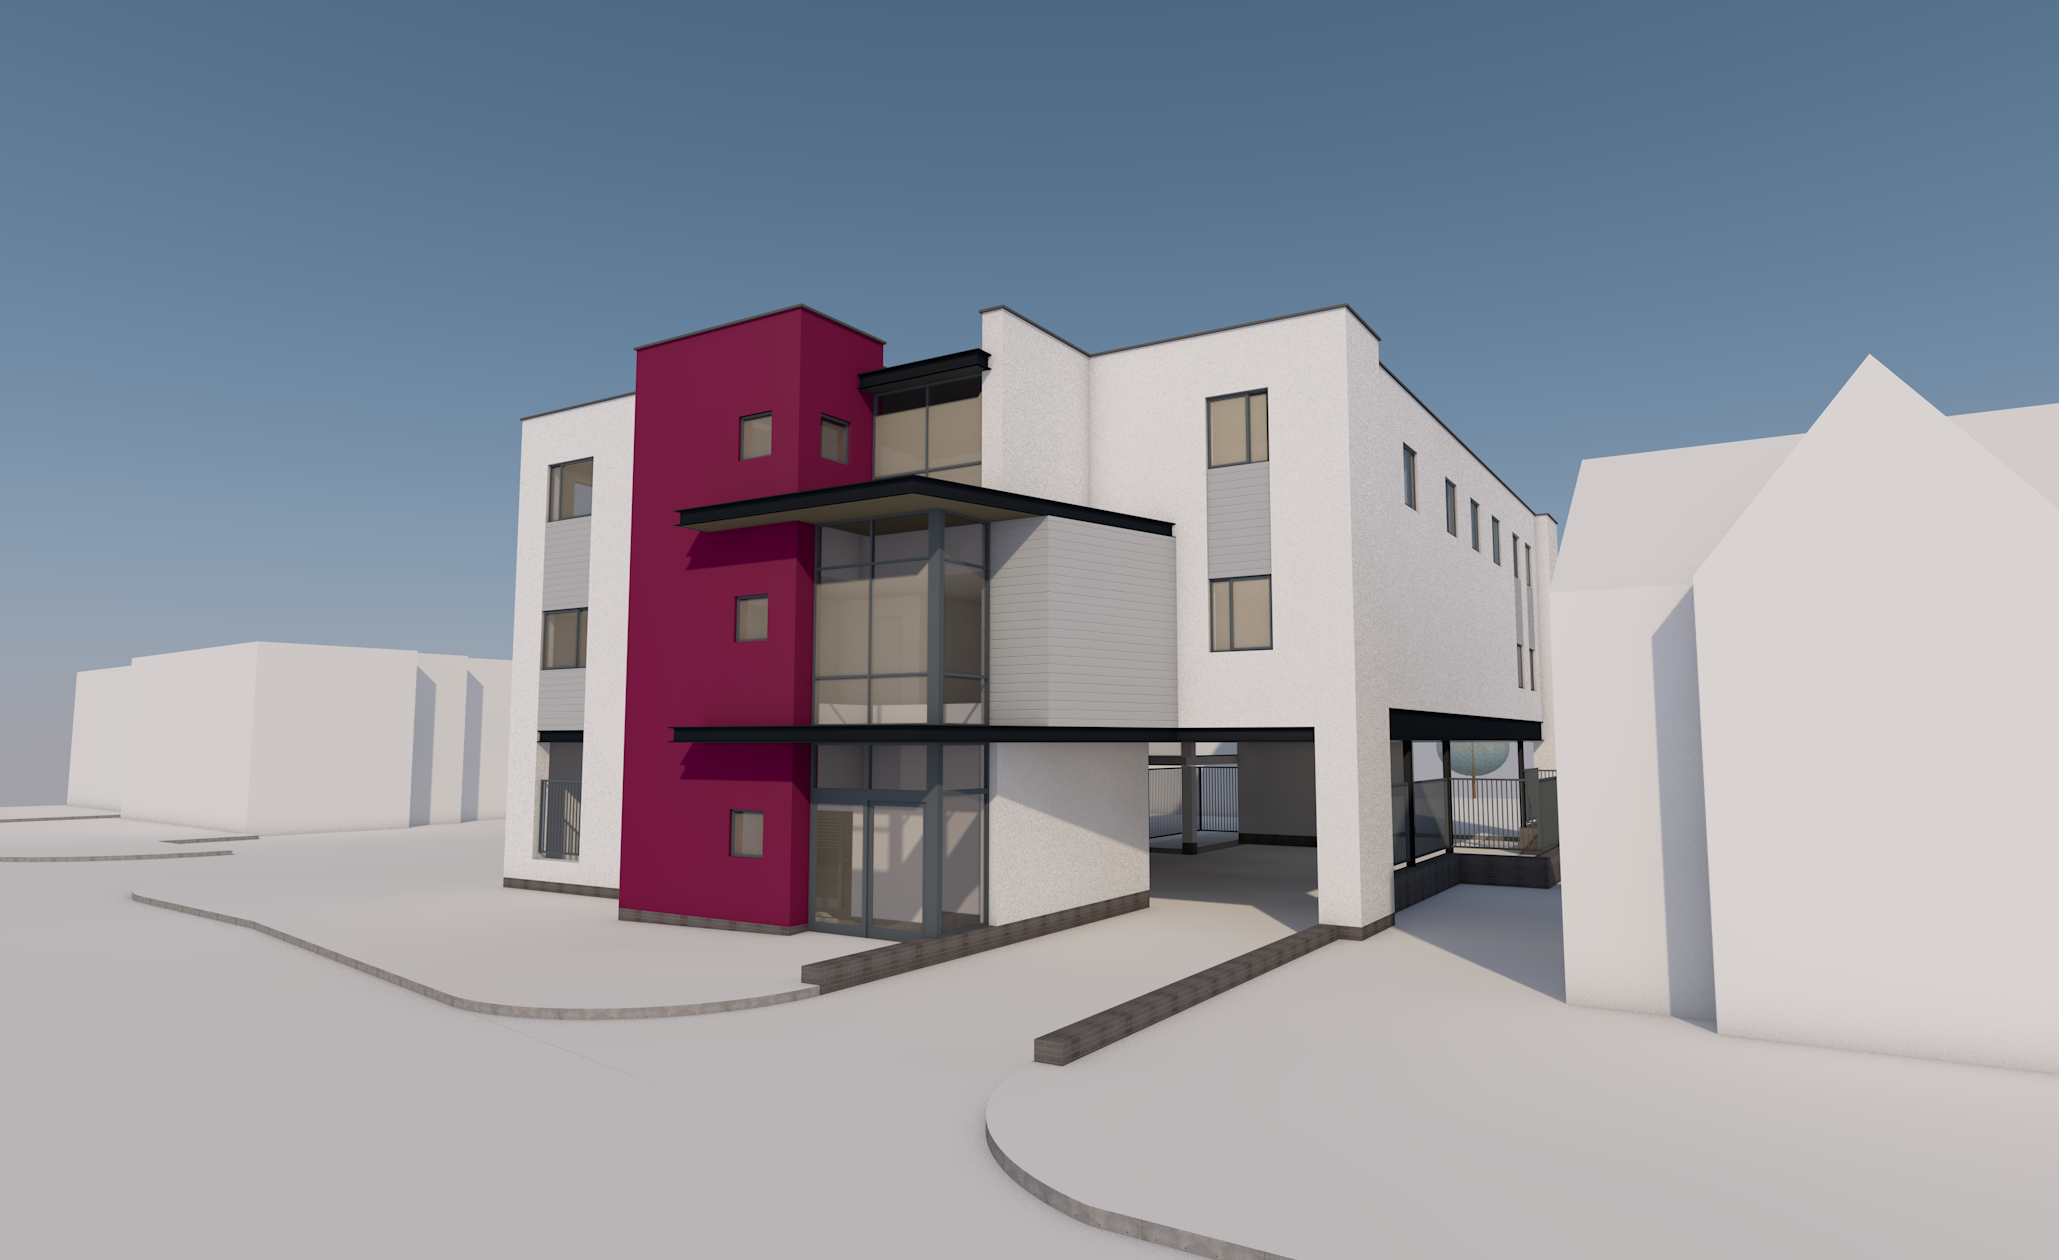 Planning permission granted for new IVF Clinic in Wickford. : brp ...